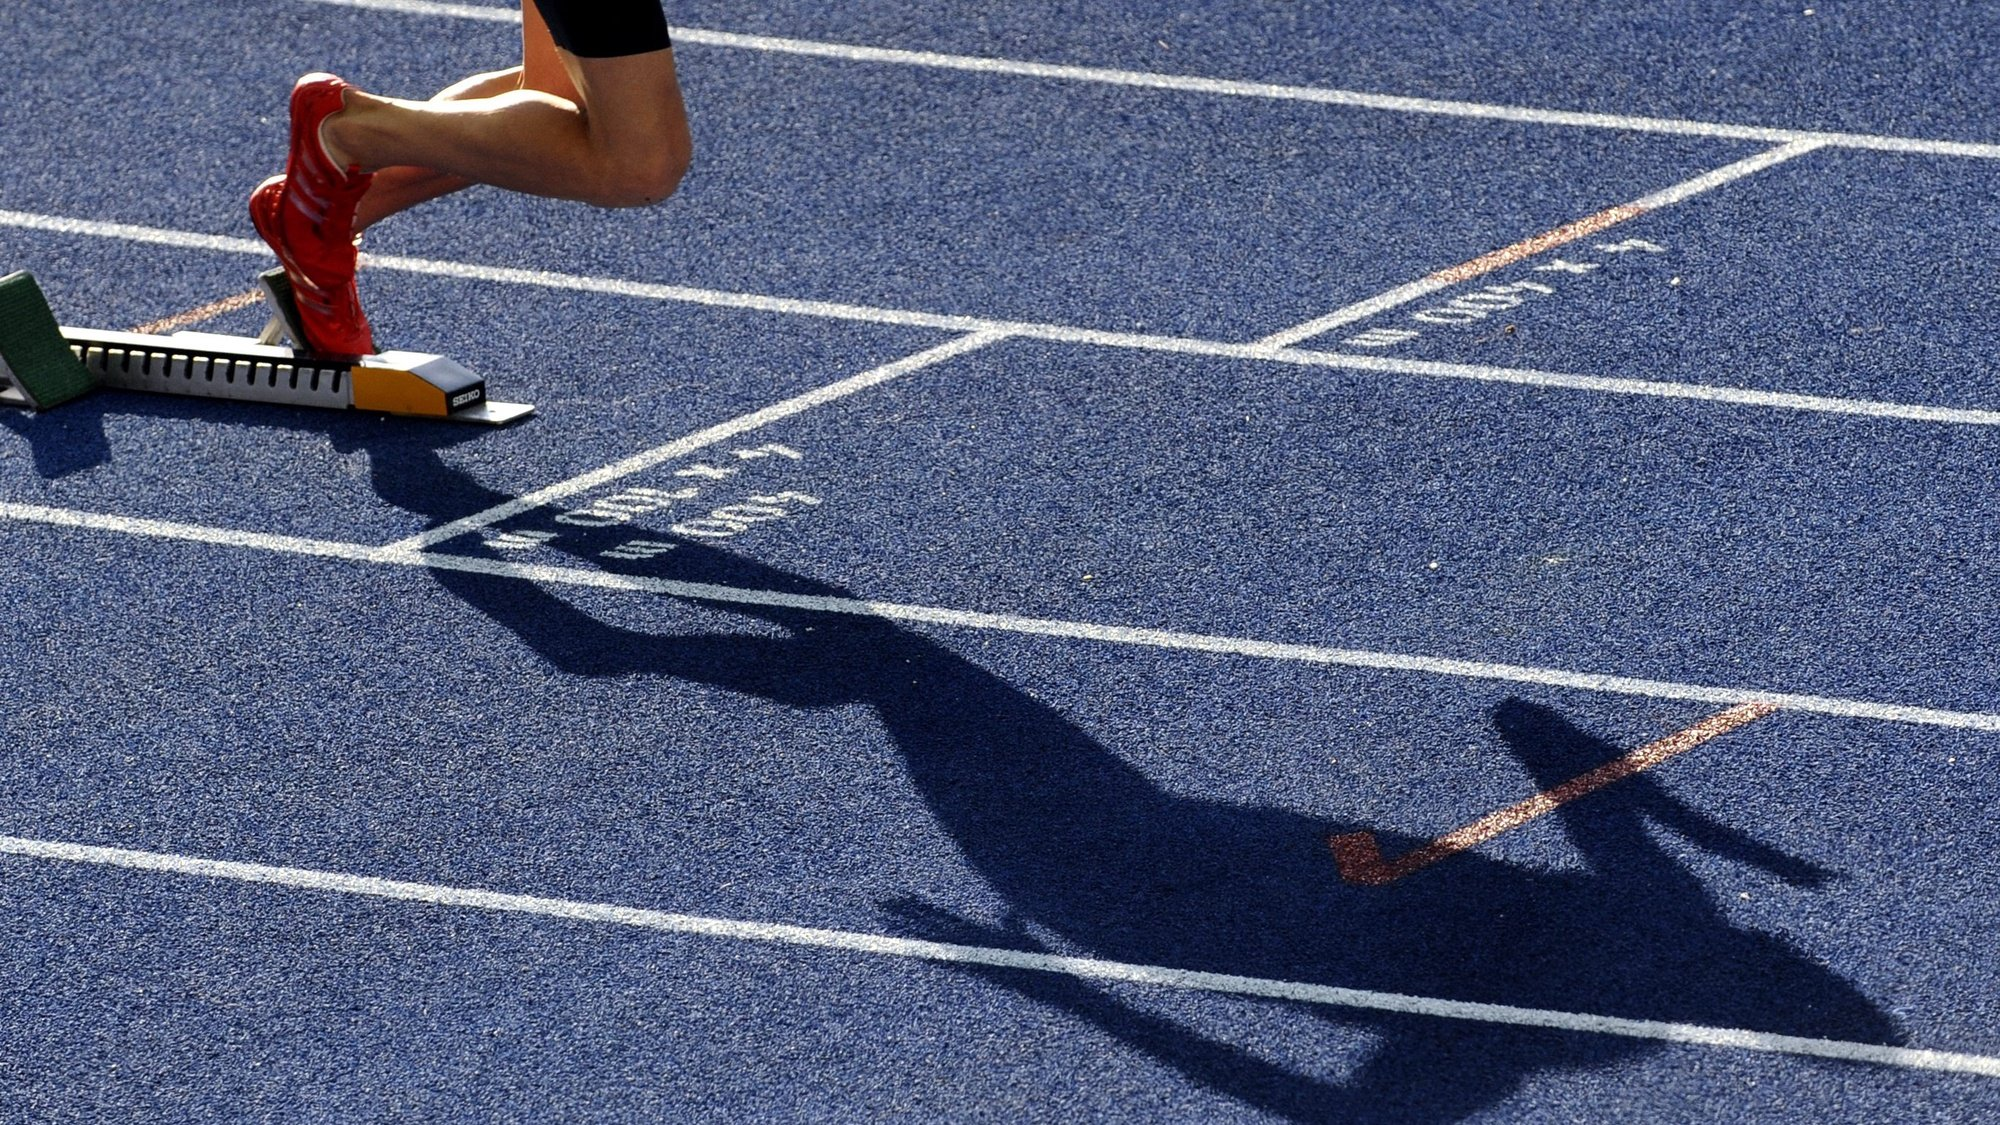 epa01829141 The shadow of Jeremy Wariner of USA seen during the 400m Semi Final at the 12th IAAF World Championships in Athletics, Berlin, Germany, 19 August 2009.  EPA/RAINER JENSEN